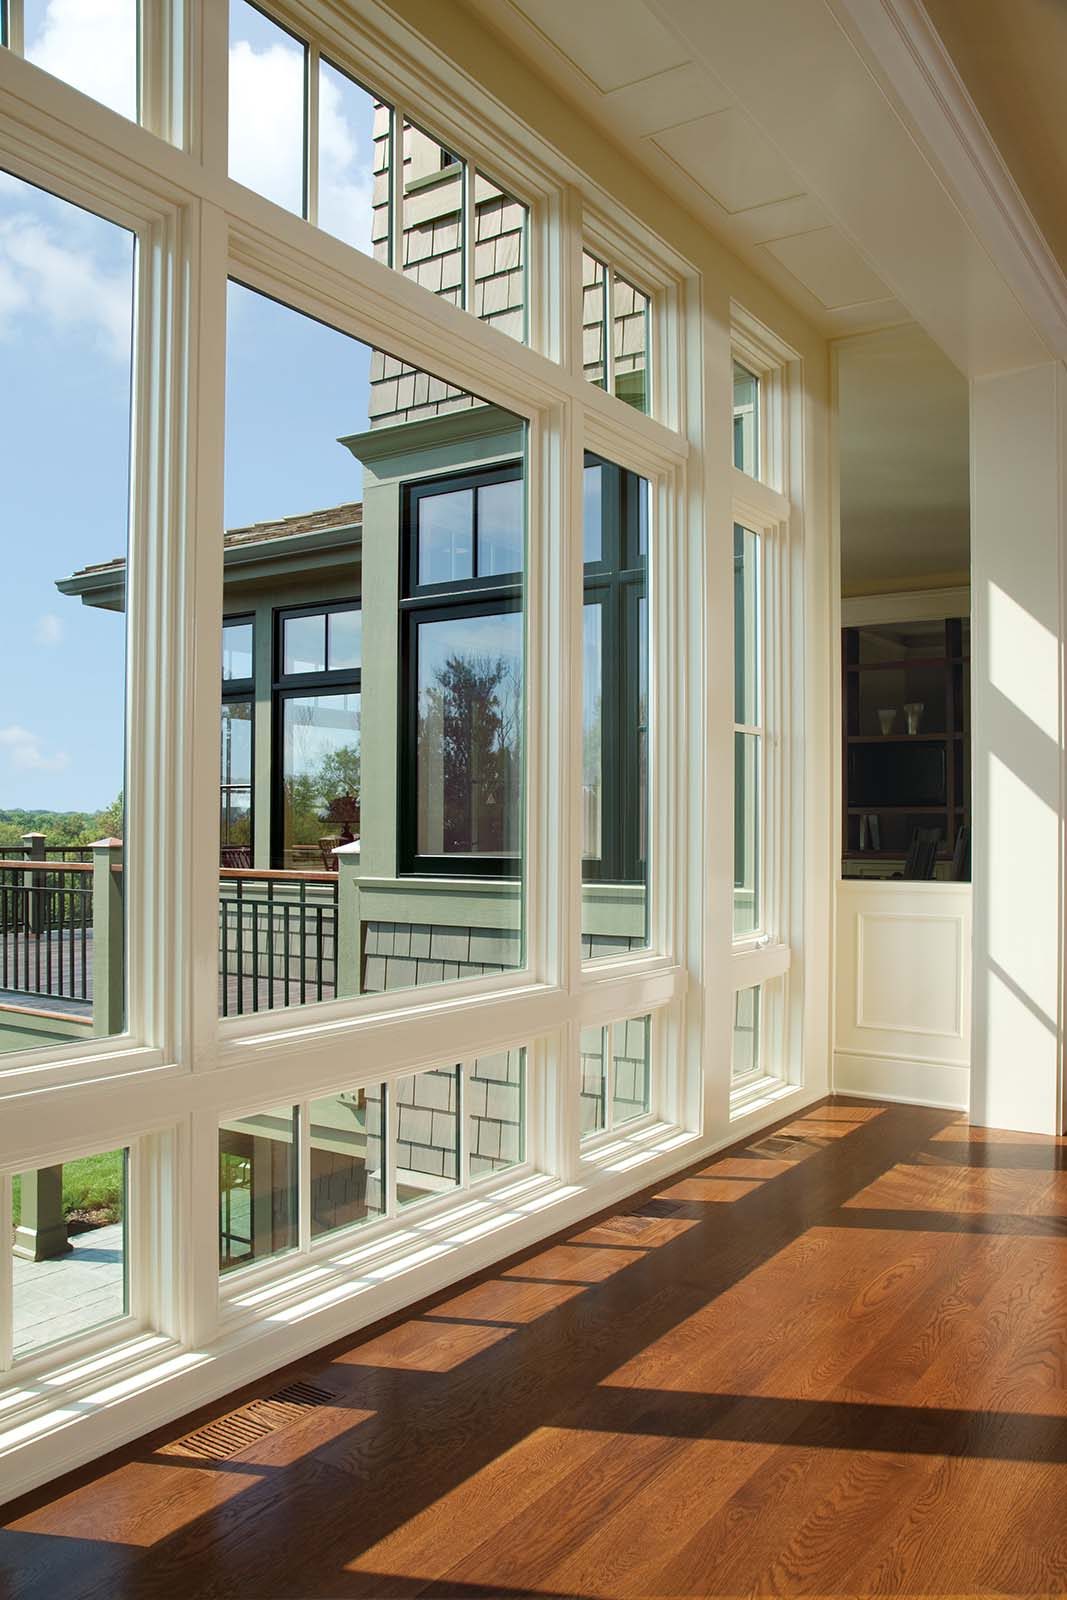 Anderson Patio Doors >> Andersen Windows & Doors | Builders' General